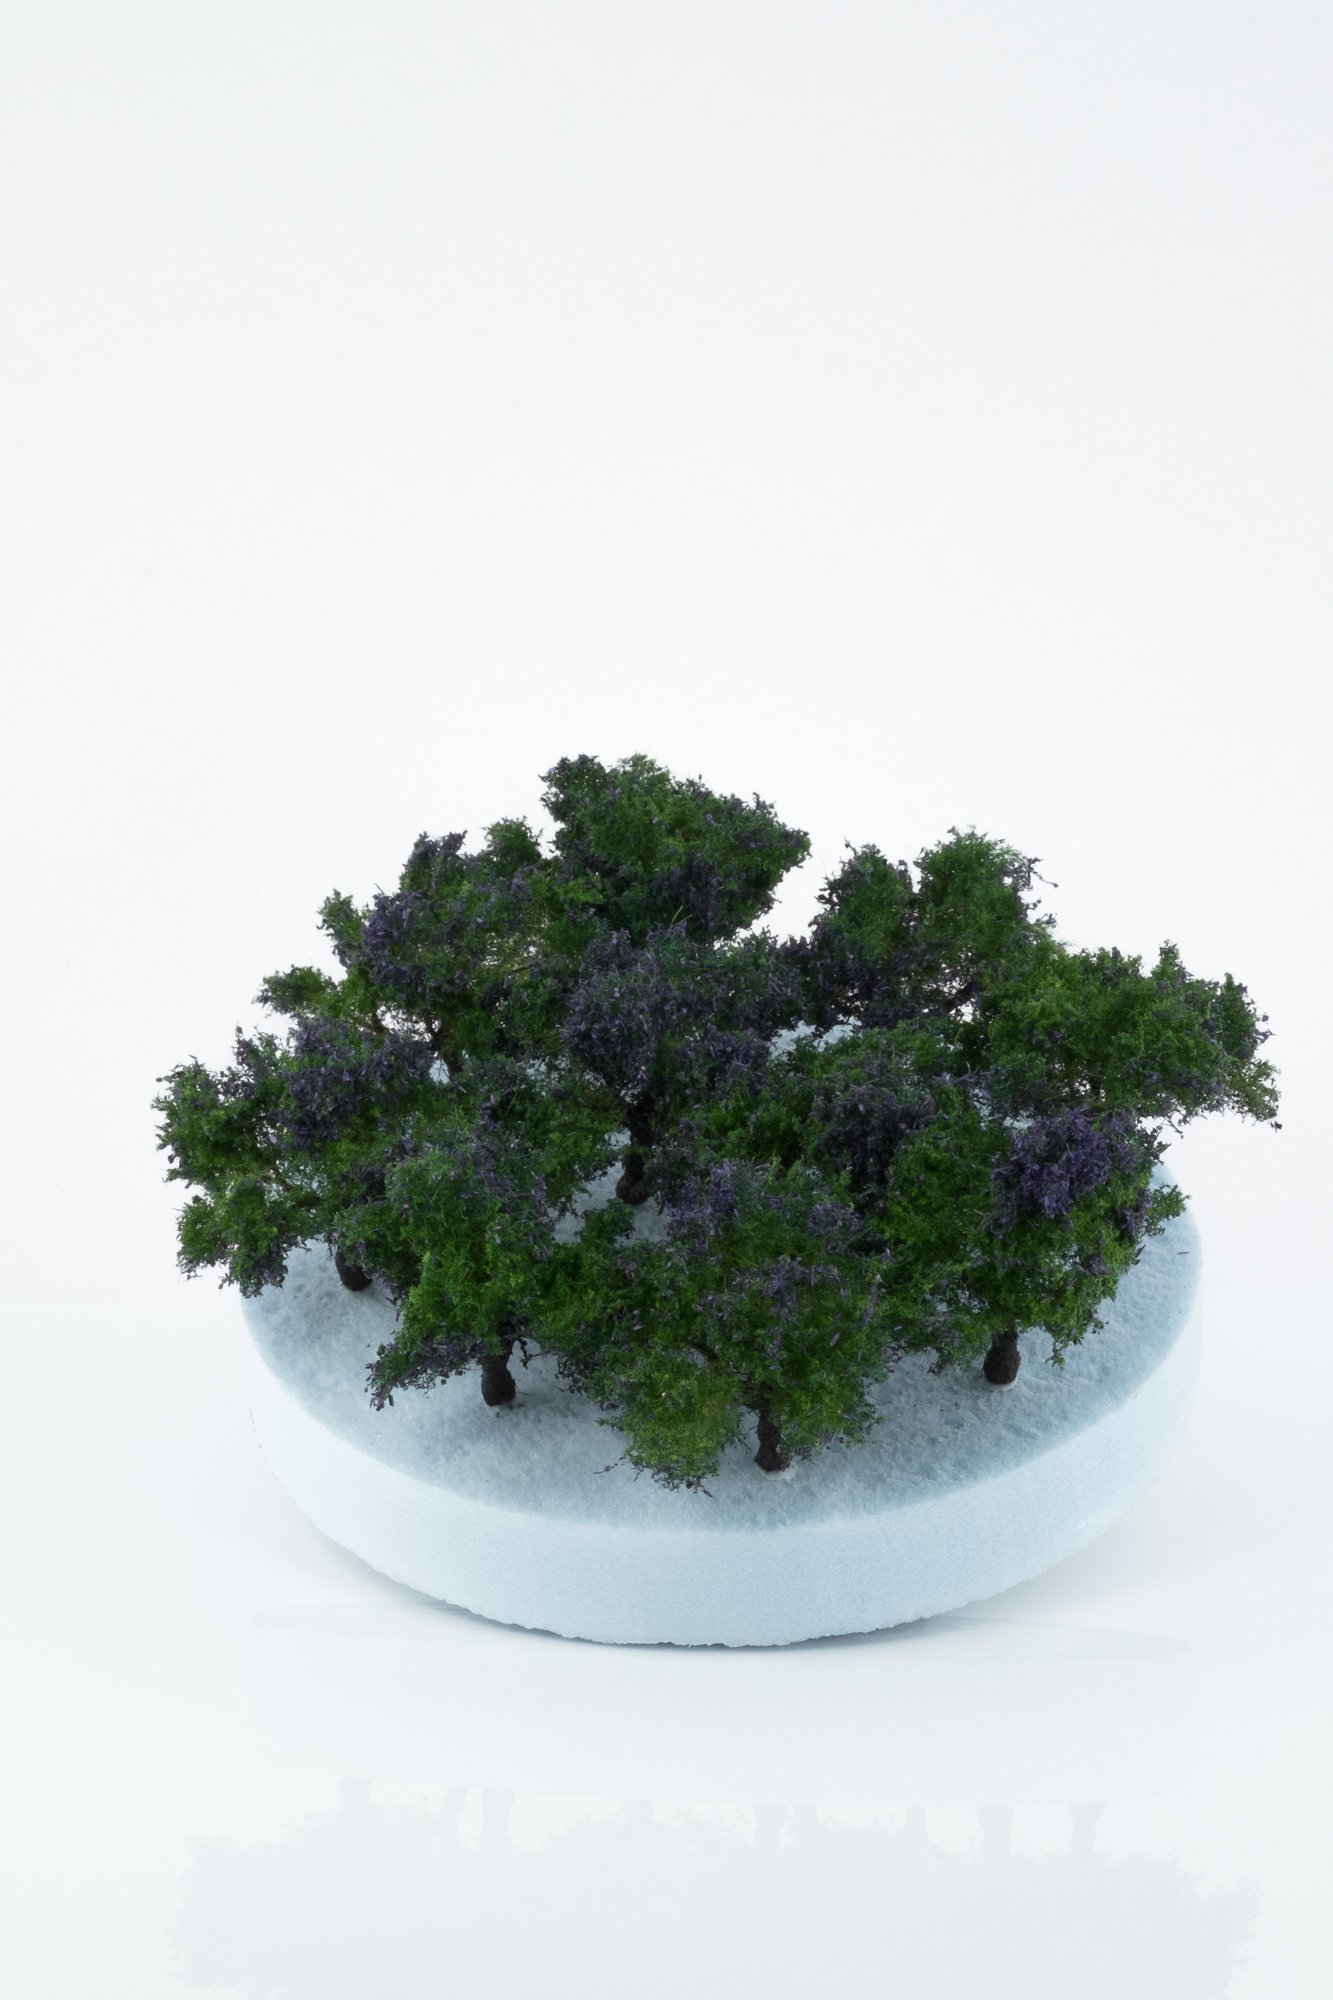 Ten pieces, regular purple model bushes. Size between 2 and 4 cm. Made from high quality model supplies by Primo Models.